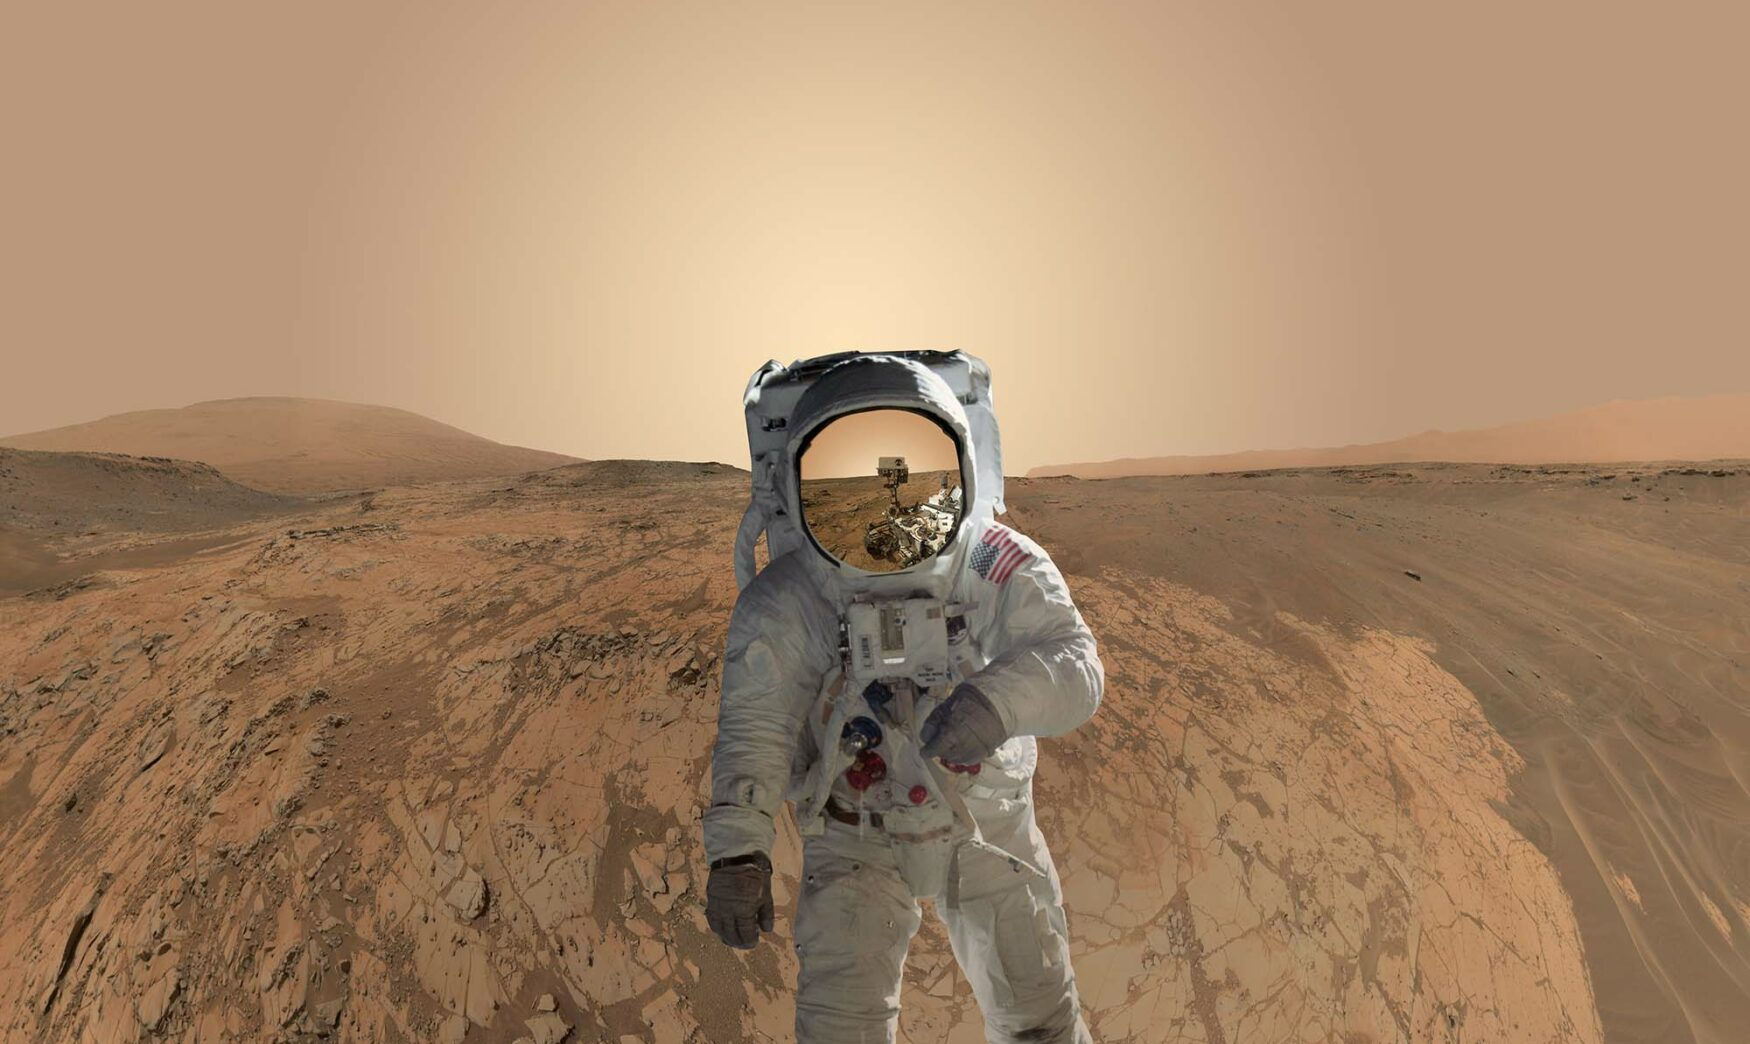 visor-photo-on-mars-web